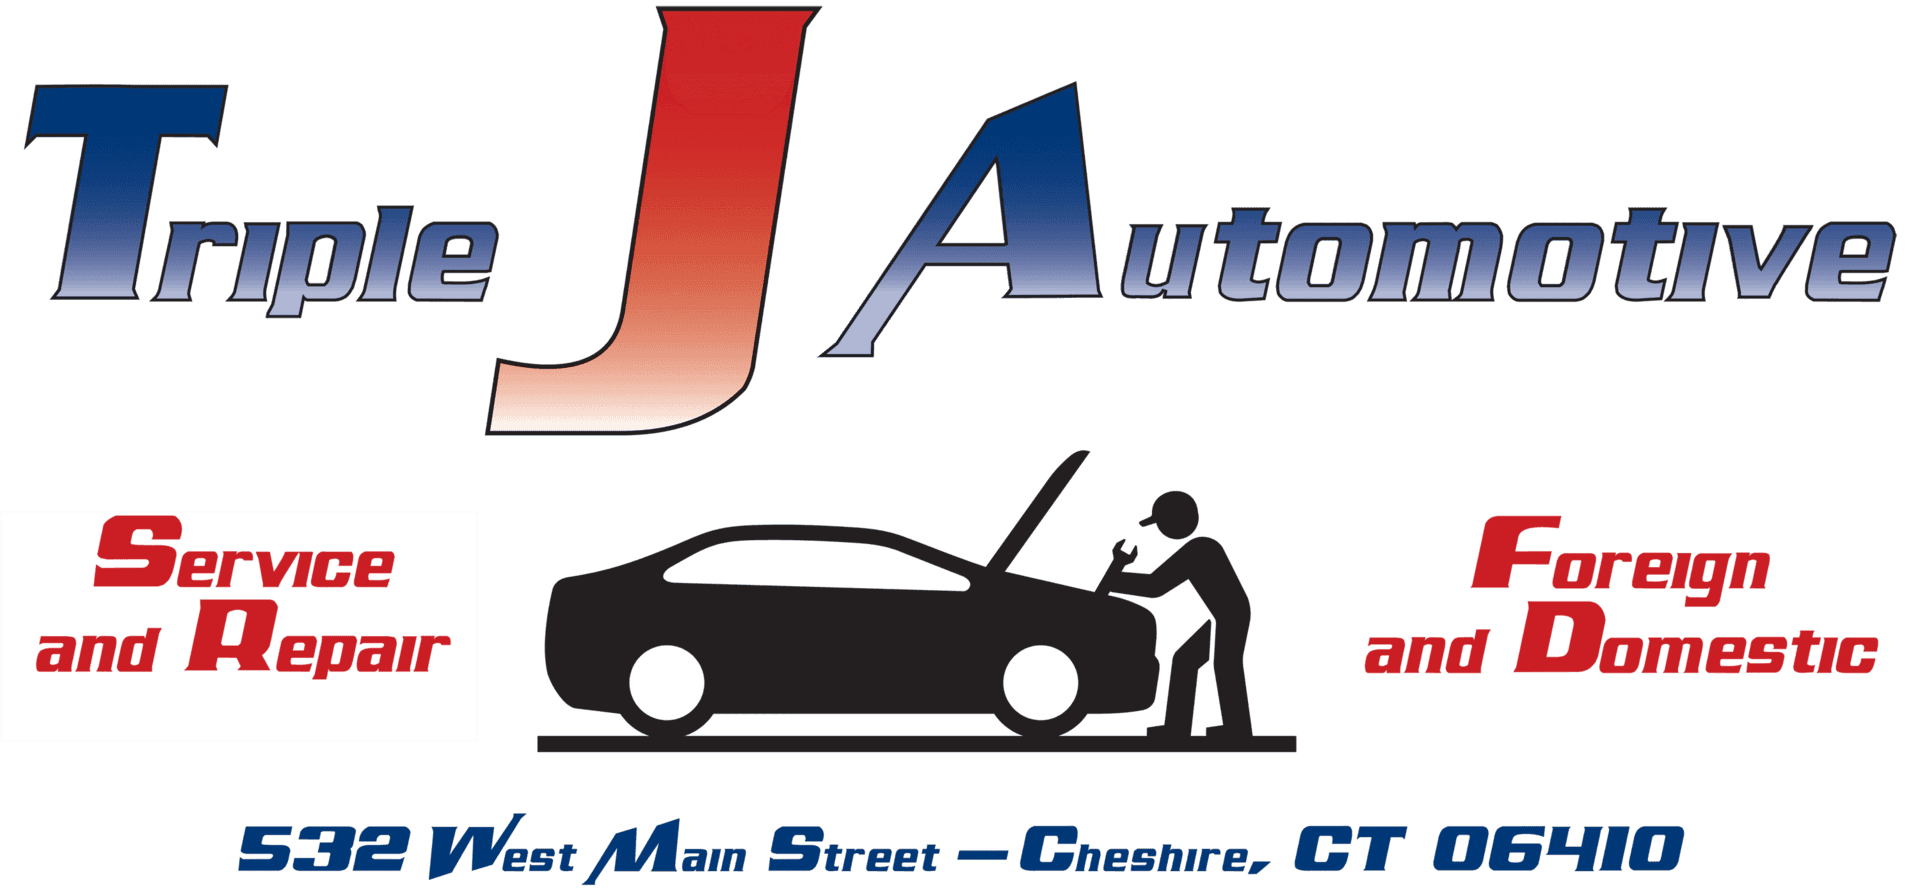 Triple J Automotive - Logo